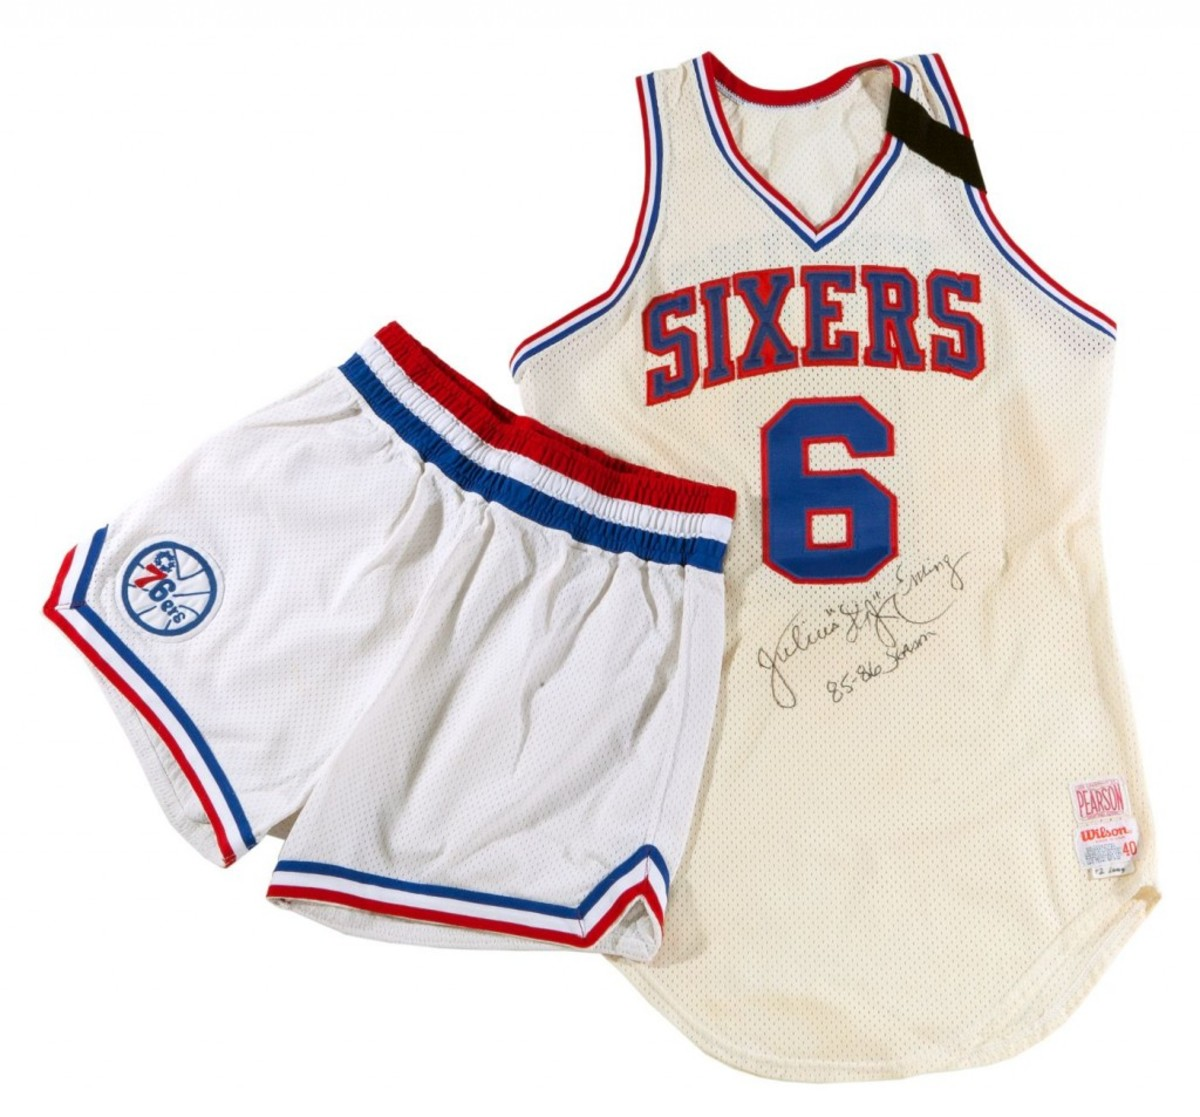 SCP Auctions has found a strong niche offering athlete collections, including that of Julius Erving. The Erving Collection brought $3.6 million. Photo courtesy of SCP Auctions.